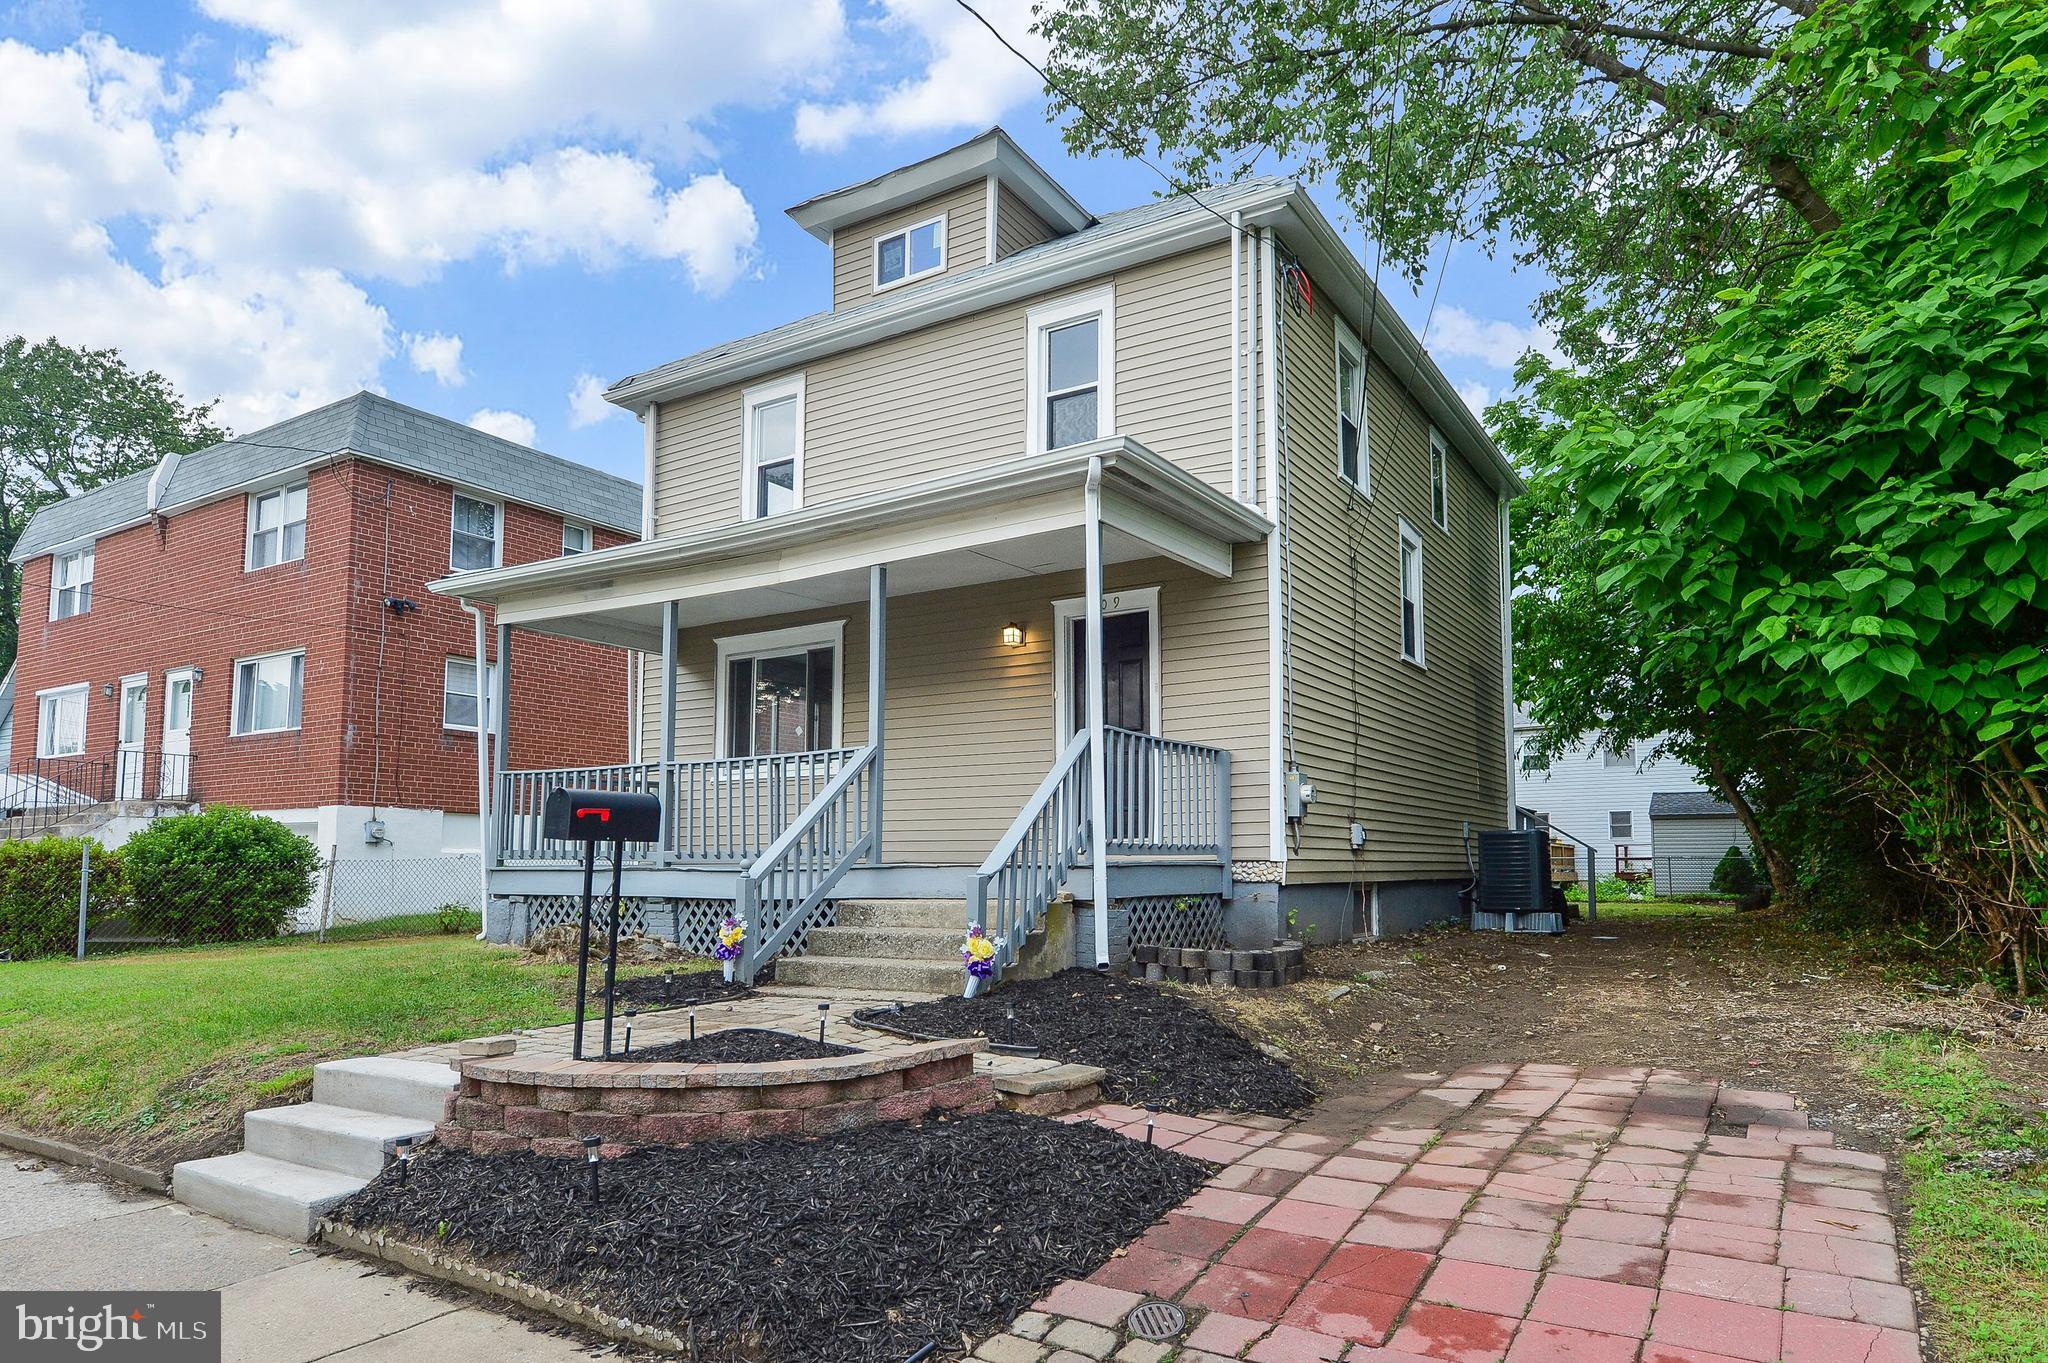 209 PENNINGTON AVENUE, MORTON, PA 19070